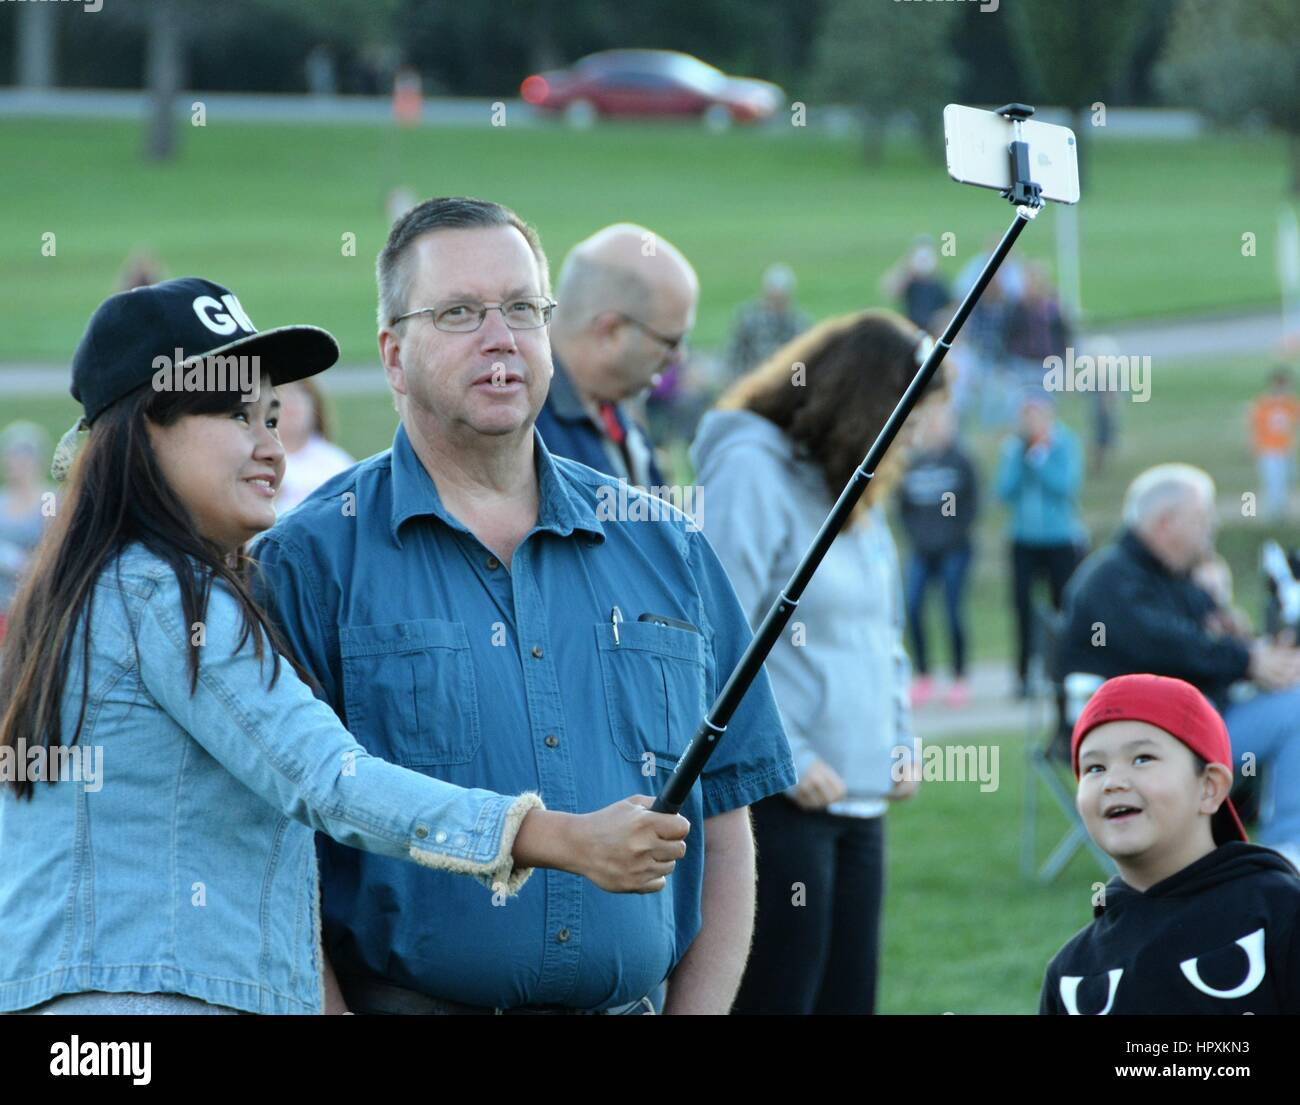 Unidentified people taking a Selfie picture - Stock Image